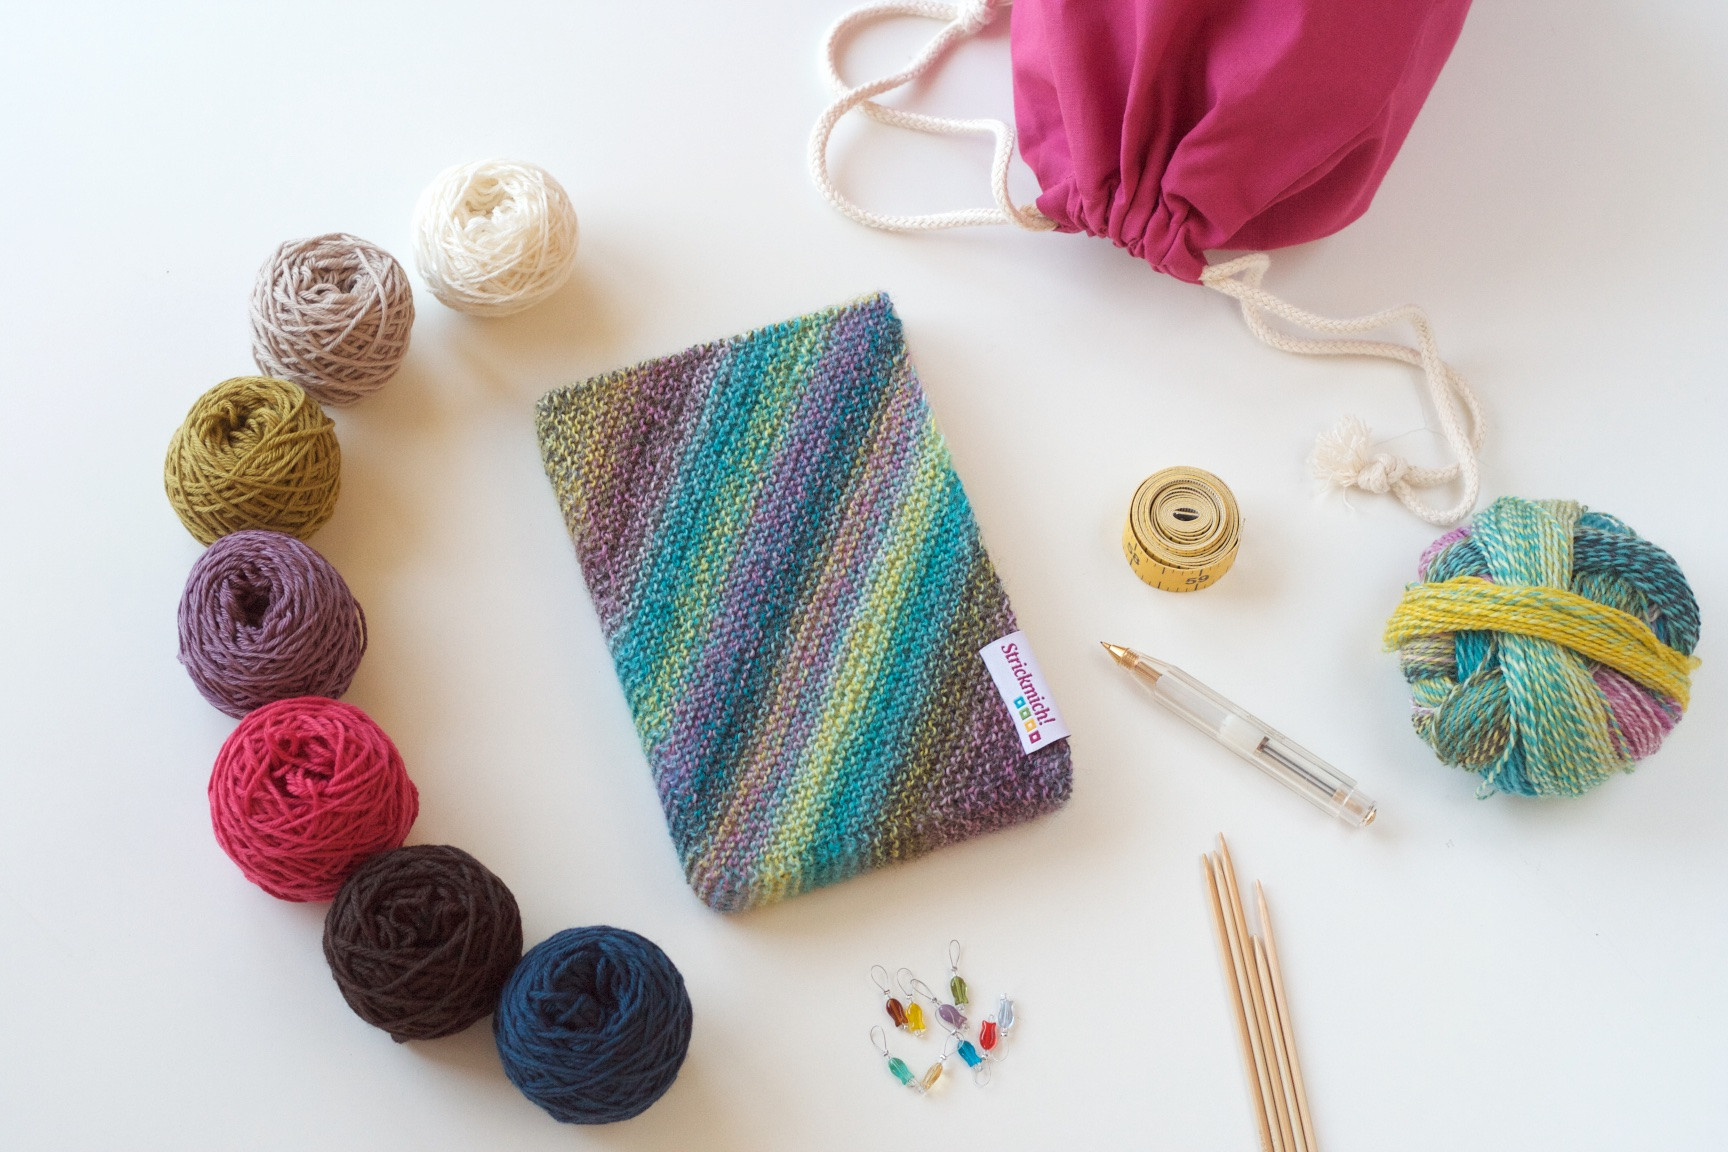 Book Cover Knitting Pattern ~ Cover your plans strickmich by martina behm